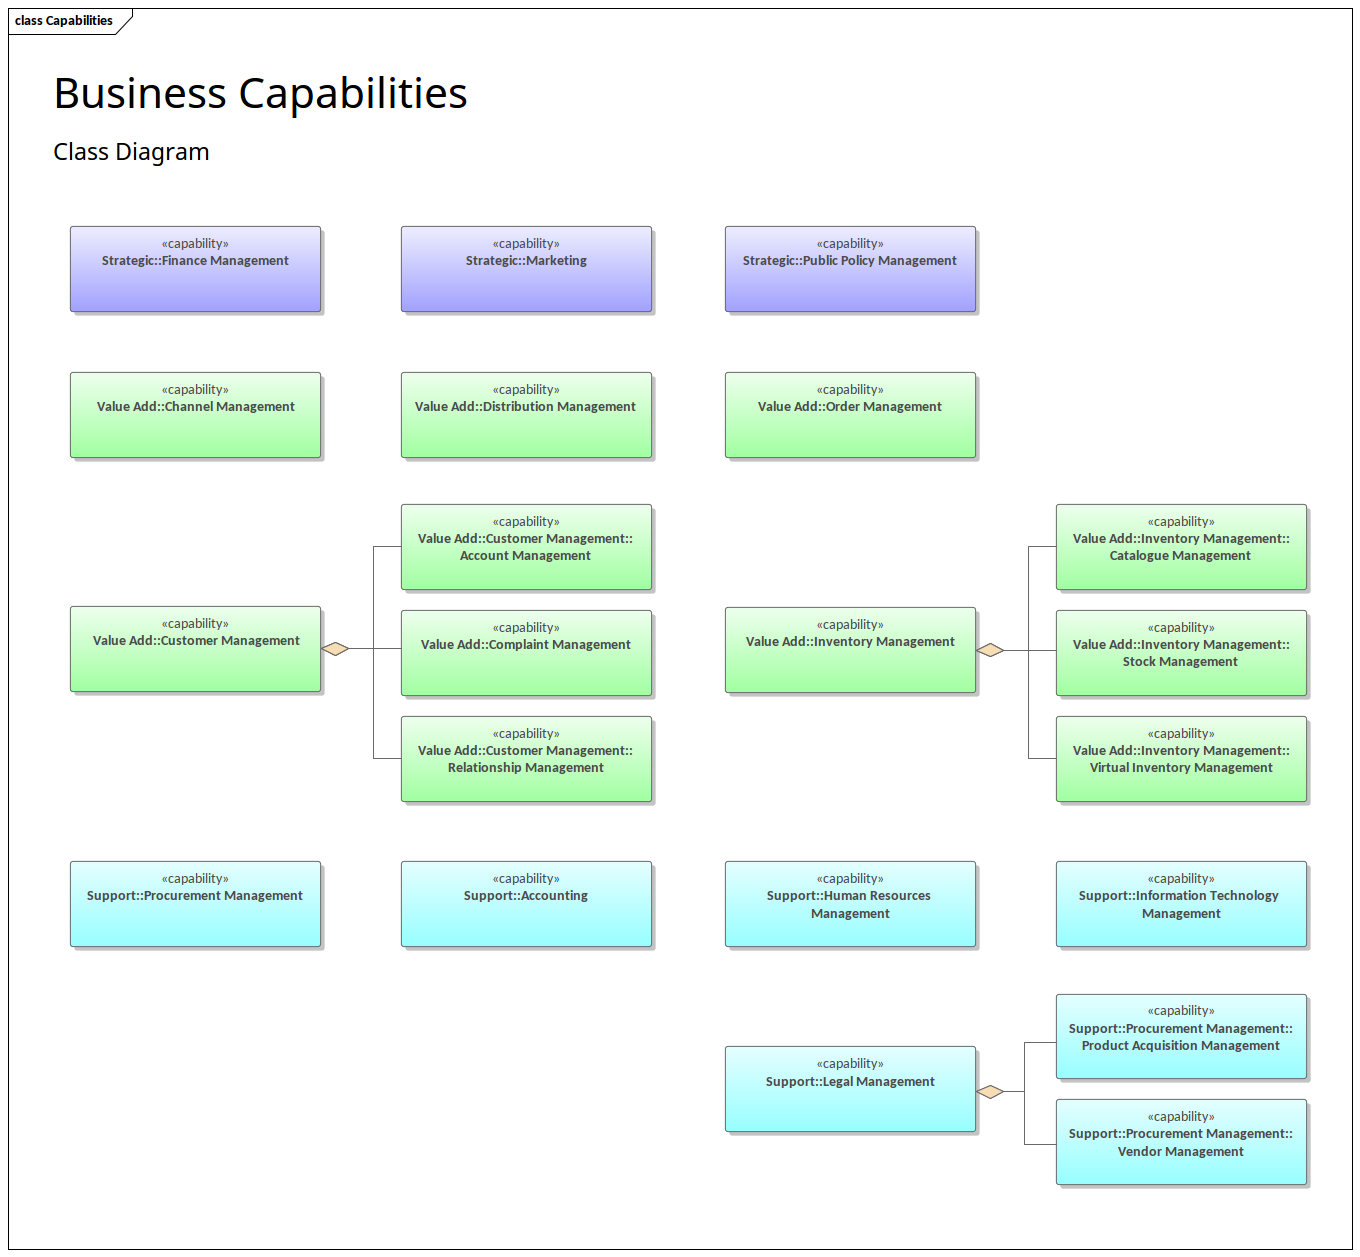 Enterprise Architecture - Business Capabilities Diagram